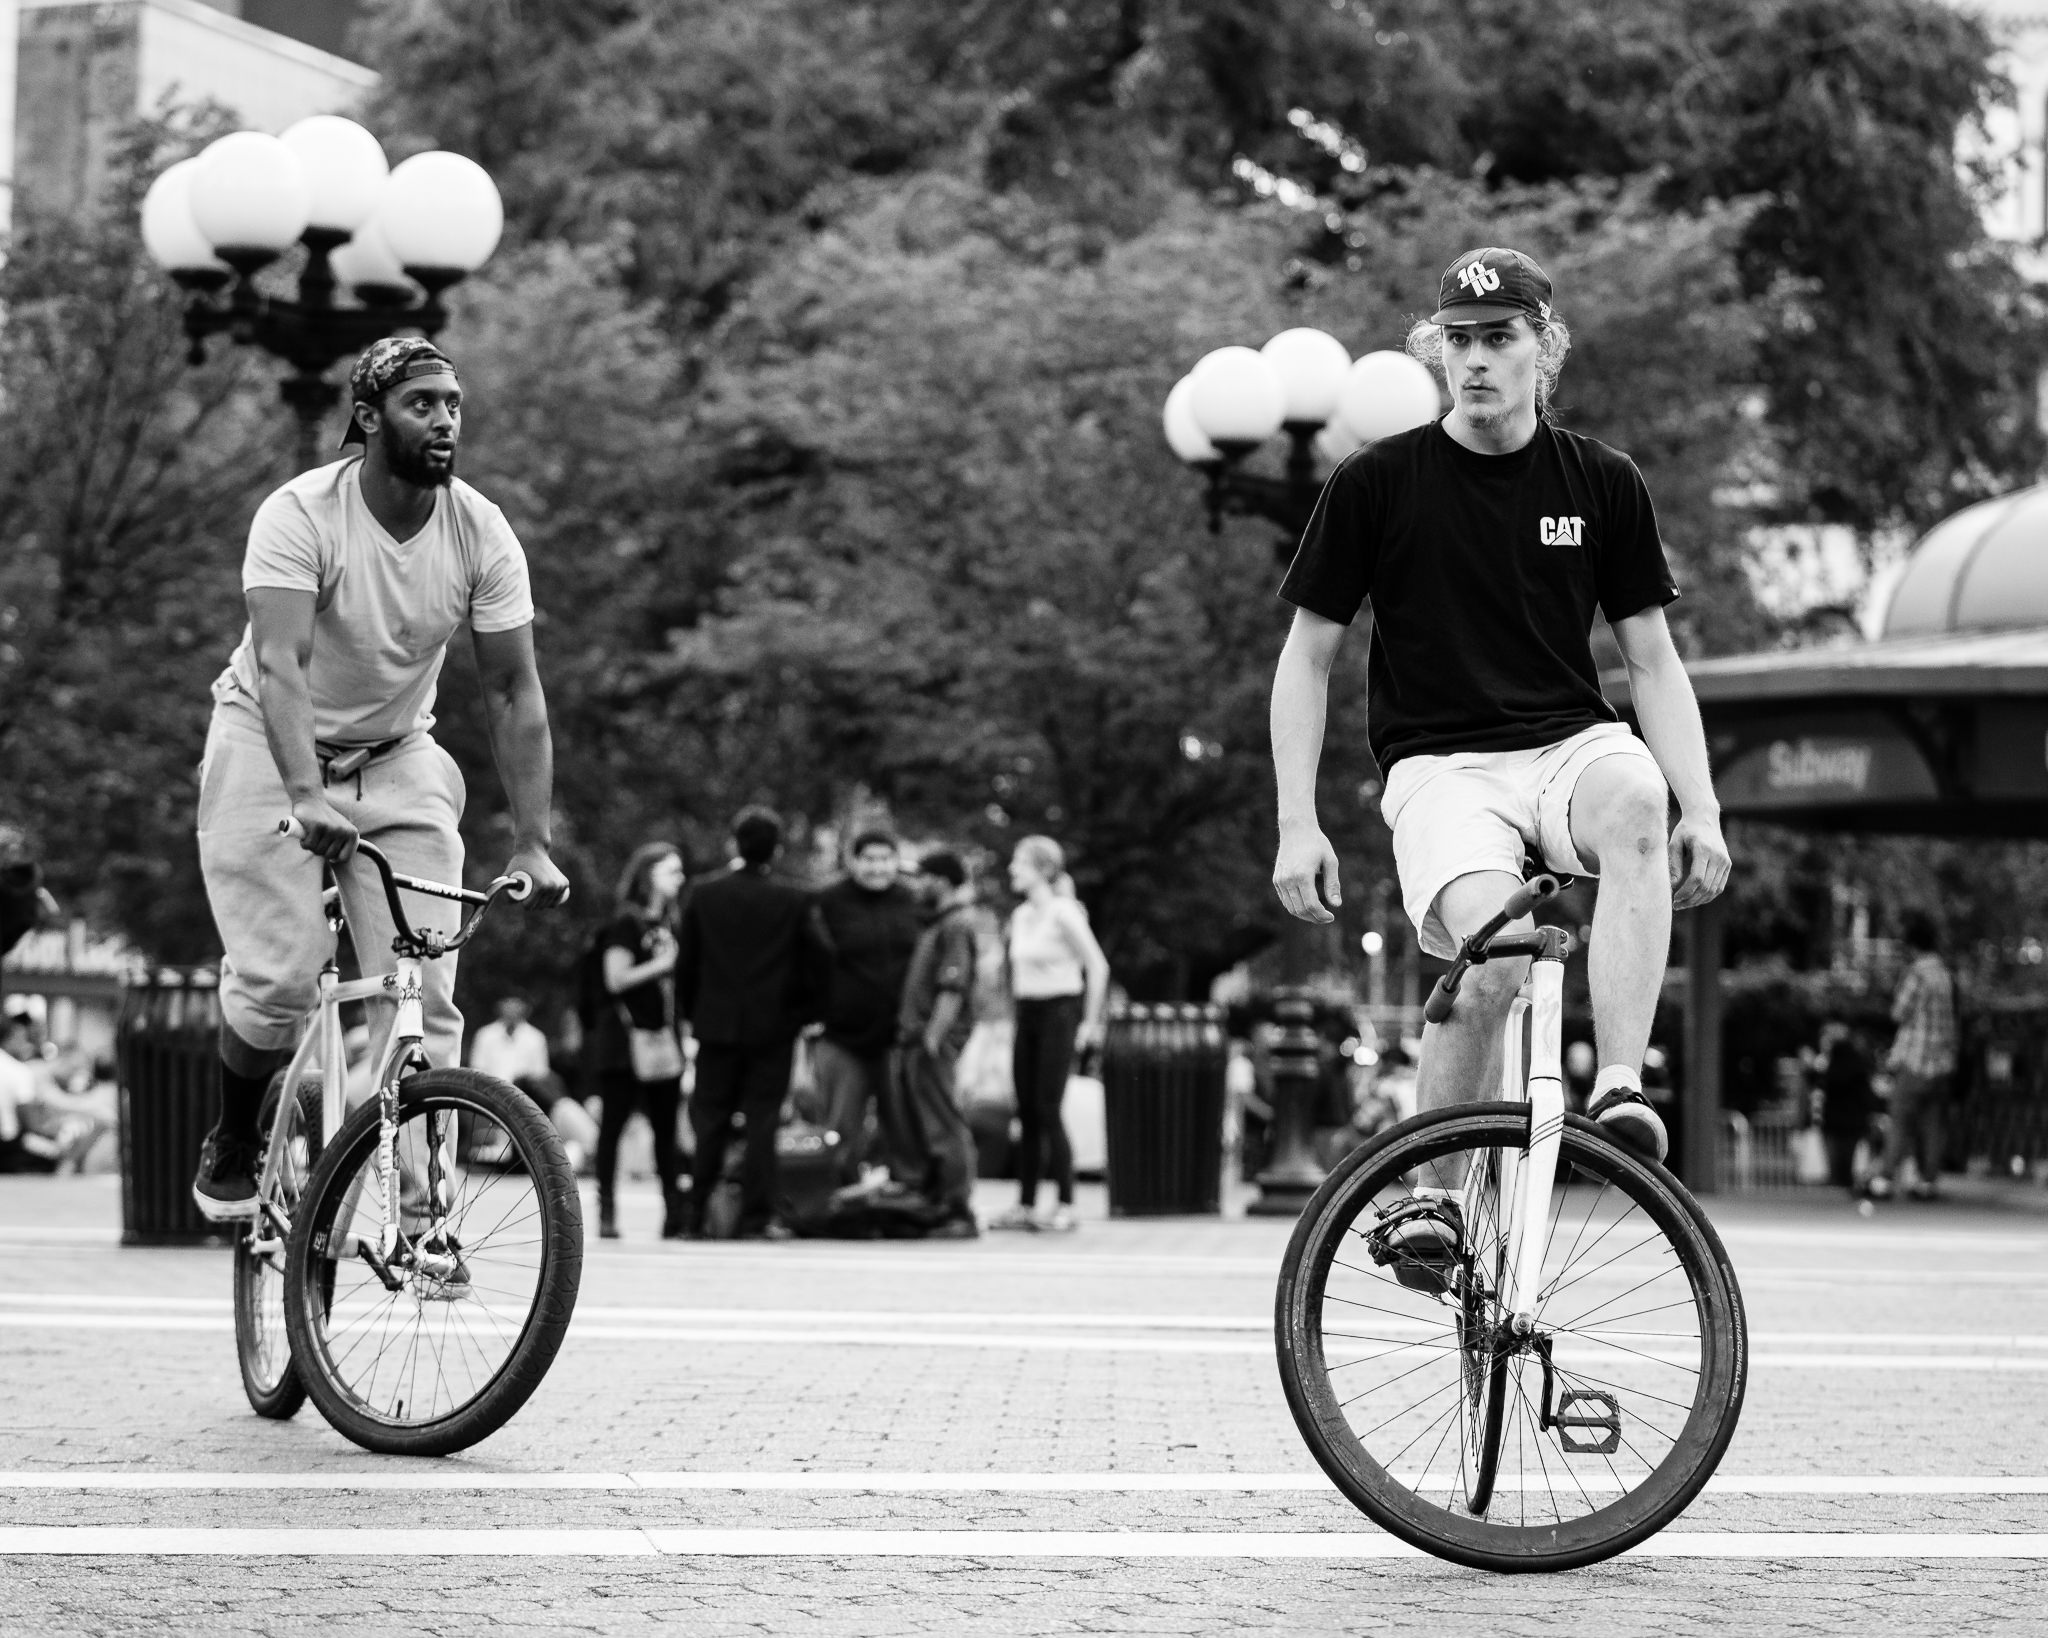 a photo of men doing stunts on bikes in union square park new york city